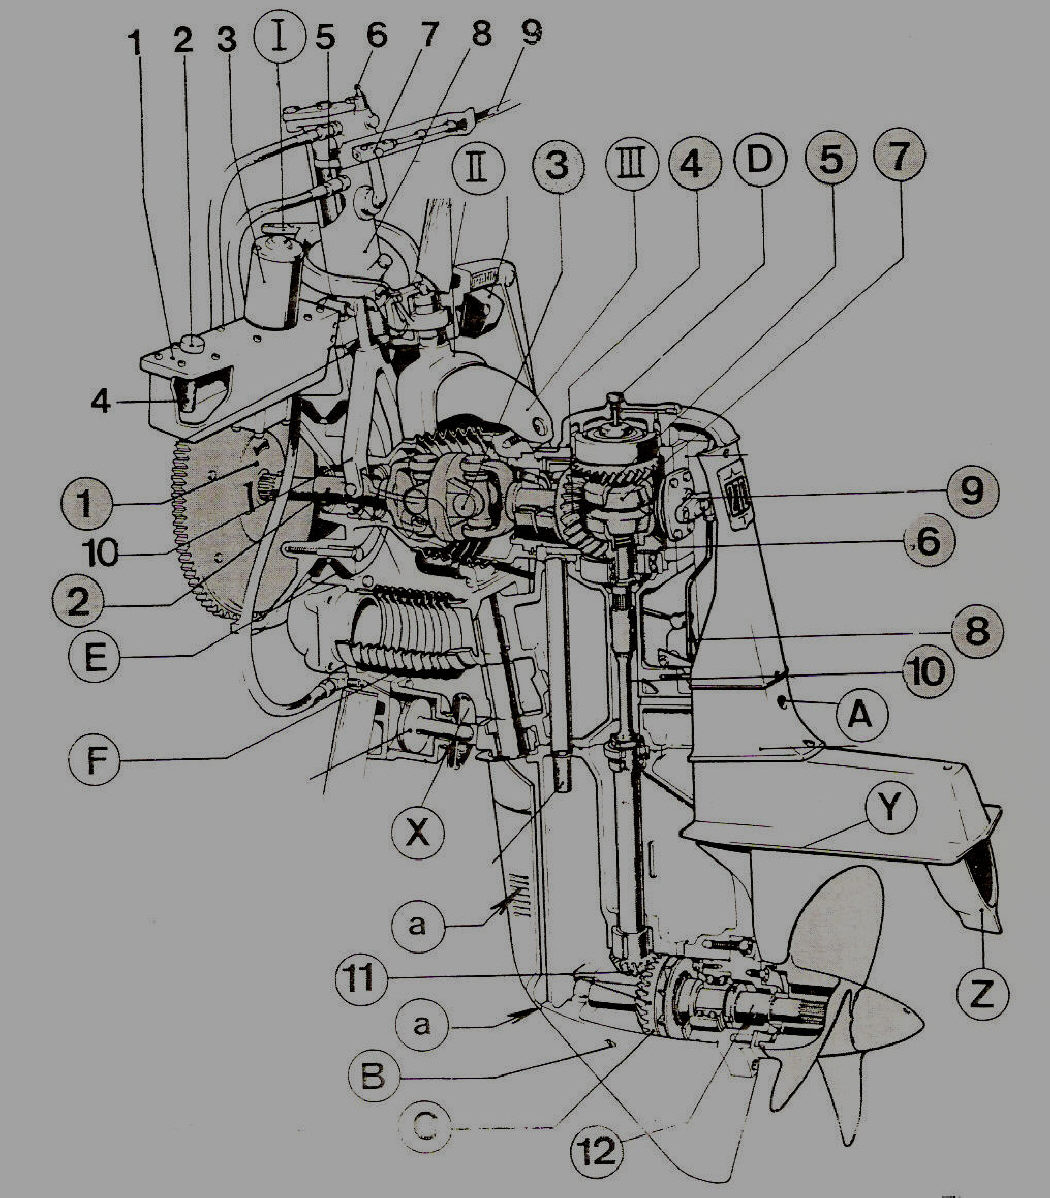 hight resolution of inboard boat motor diagram wiring diagram operations inboard outboard boat motor diagram inboard boat motor diagram